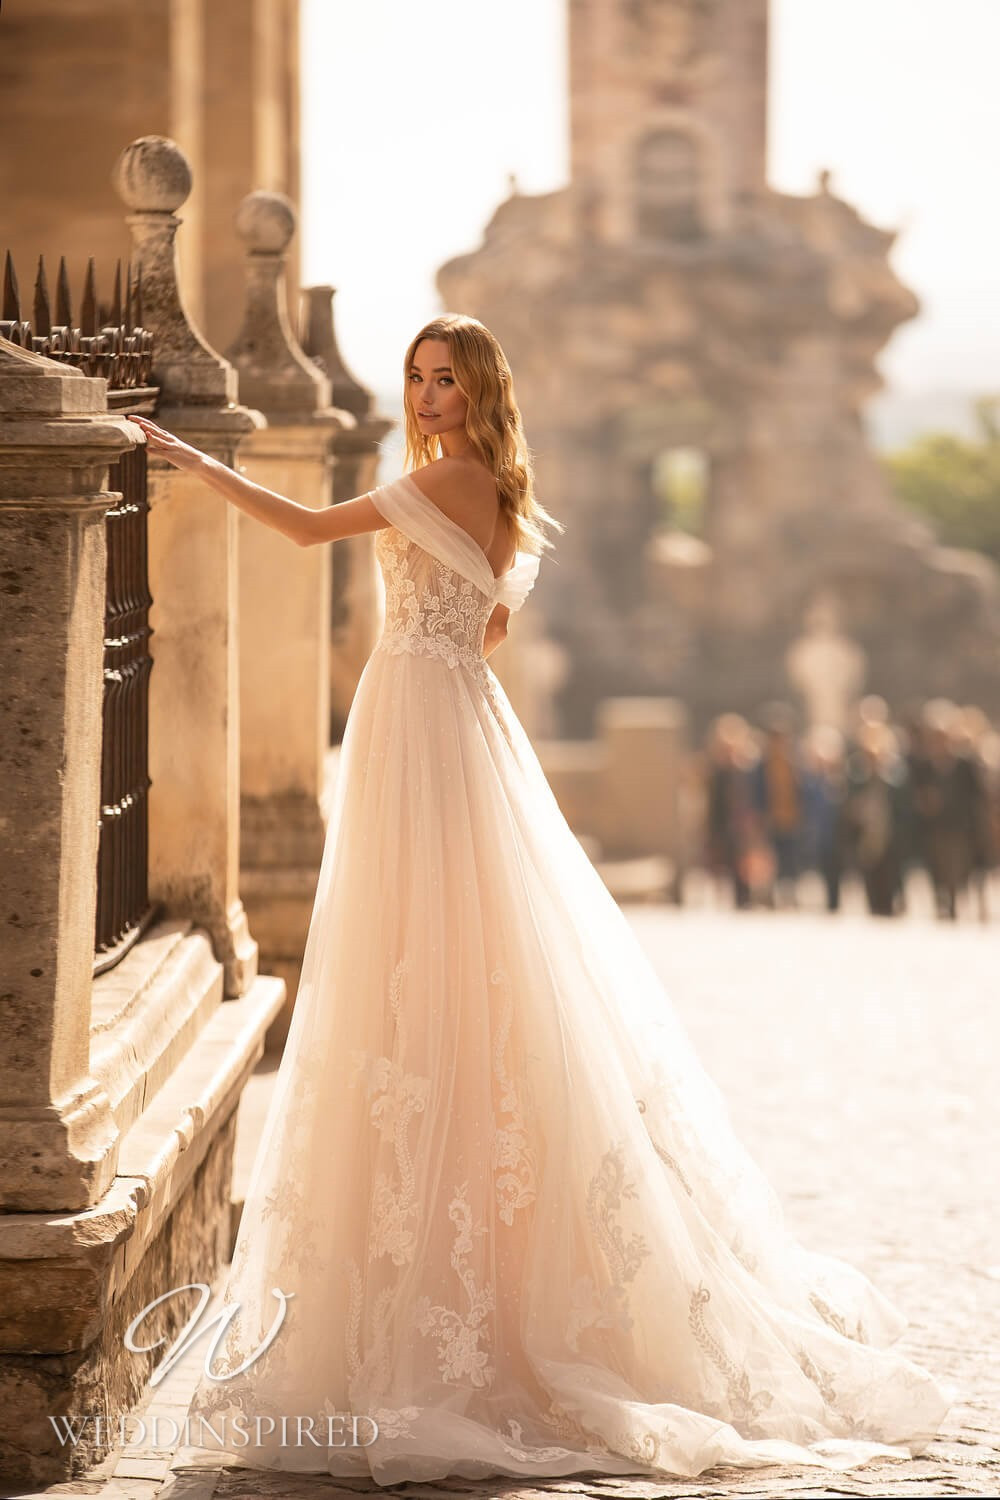 An Essential by Lussano 2021 blush lace and tulle A-line wedding dress